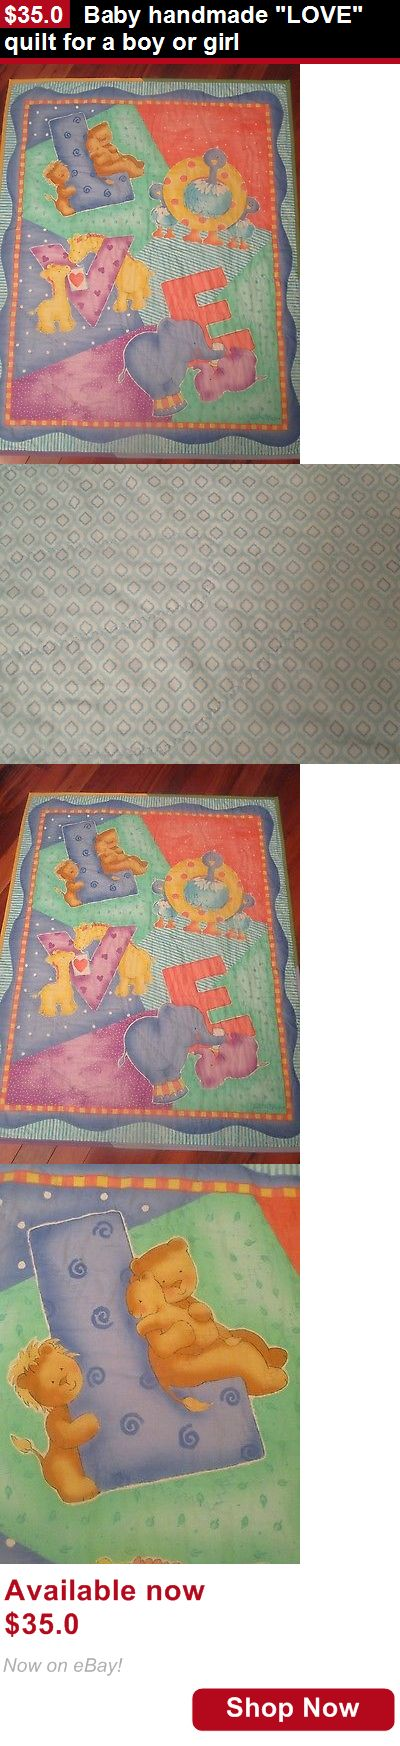 Quilts And Coverlets: Baby Handmade Love Quilt For A Boy Or Girl BUY IT NOW ONLY: $35.0